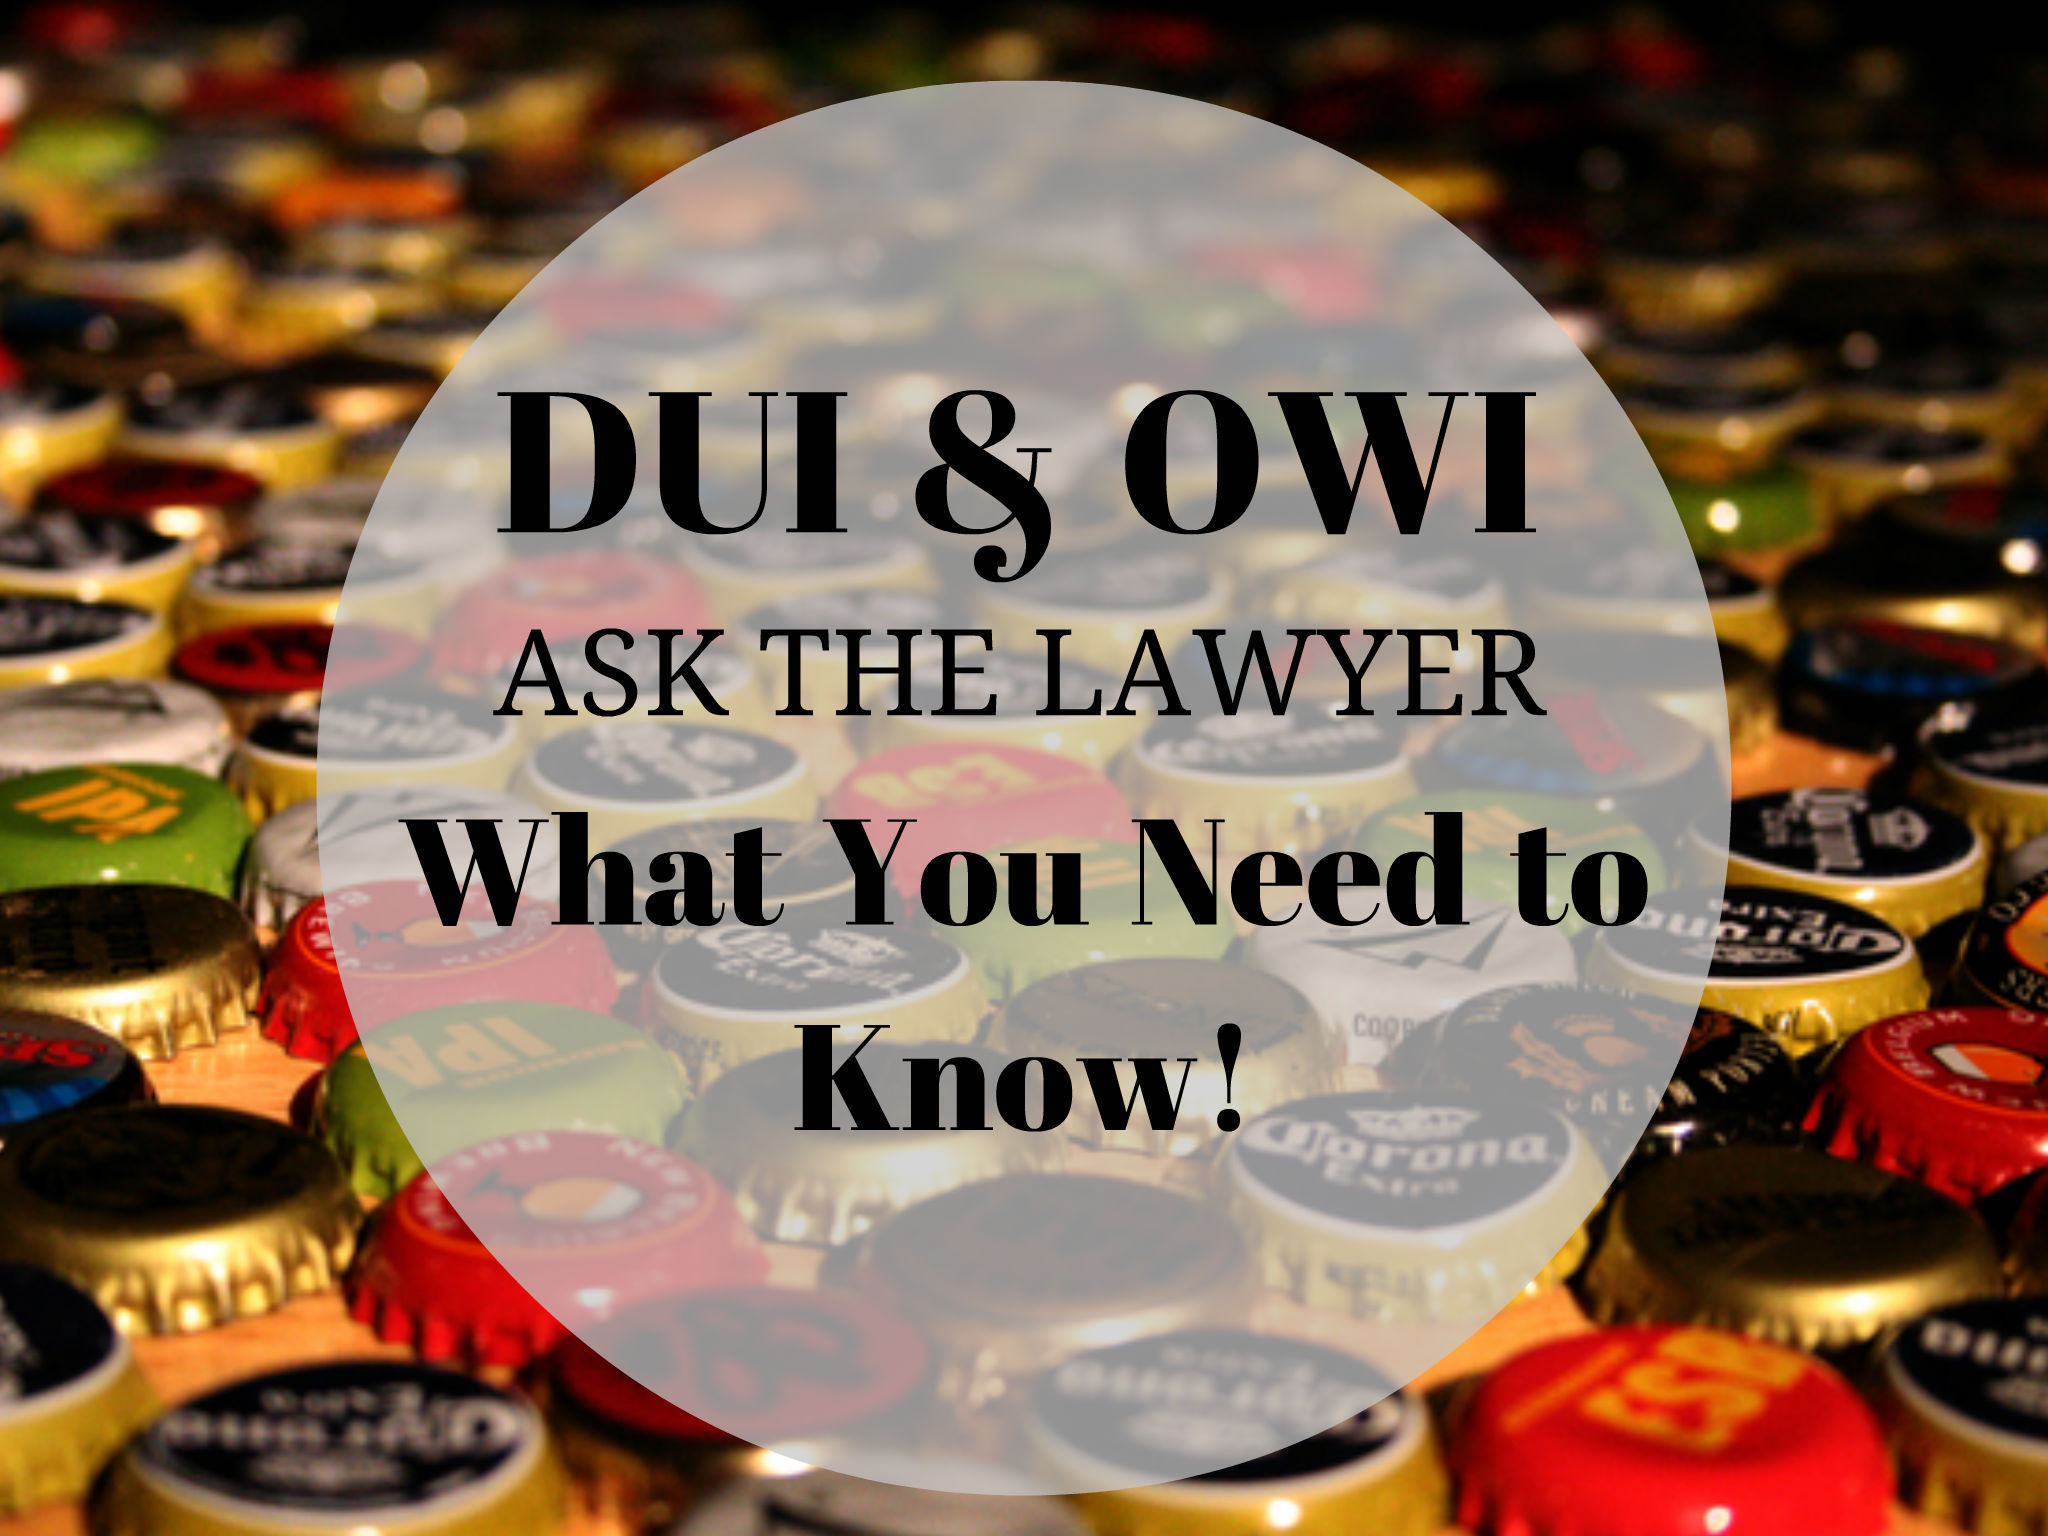 How Much Do You Have to Drink (*BAC) For An OWI In Michigan? DUI and OWI - Ask the Lawyer; Here's what you need to know about drunk driving